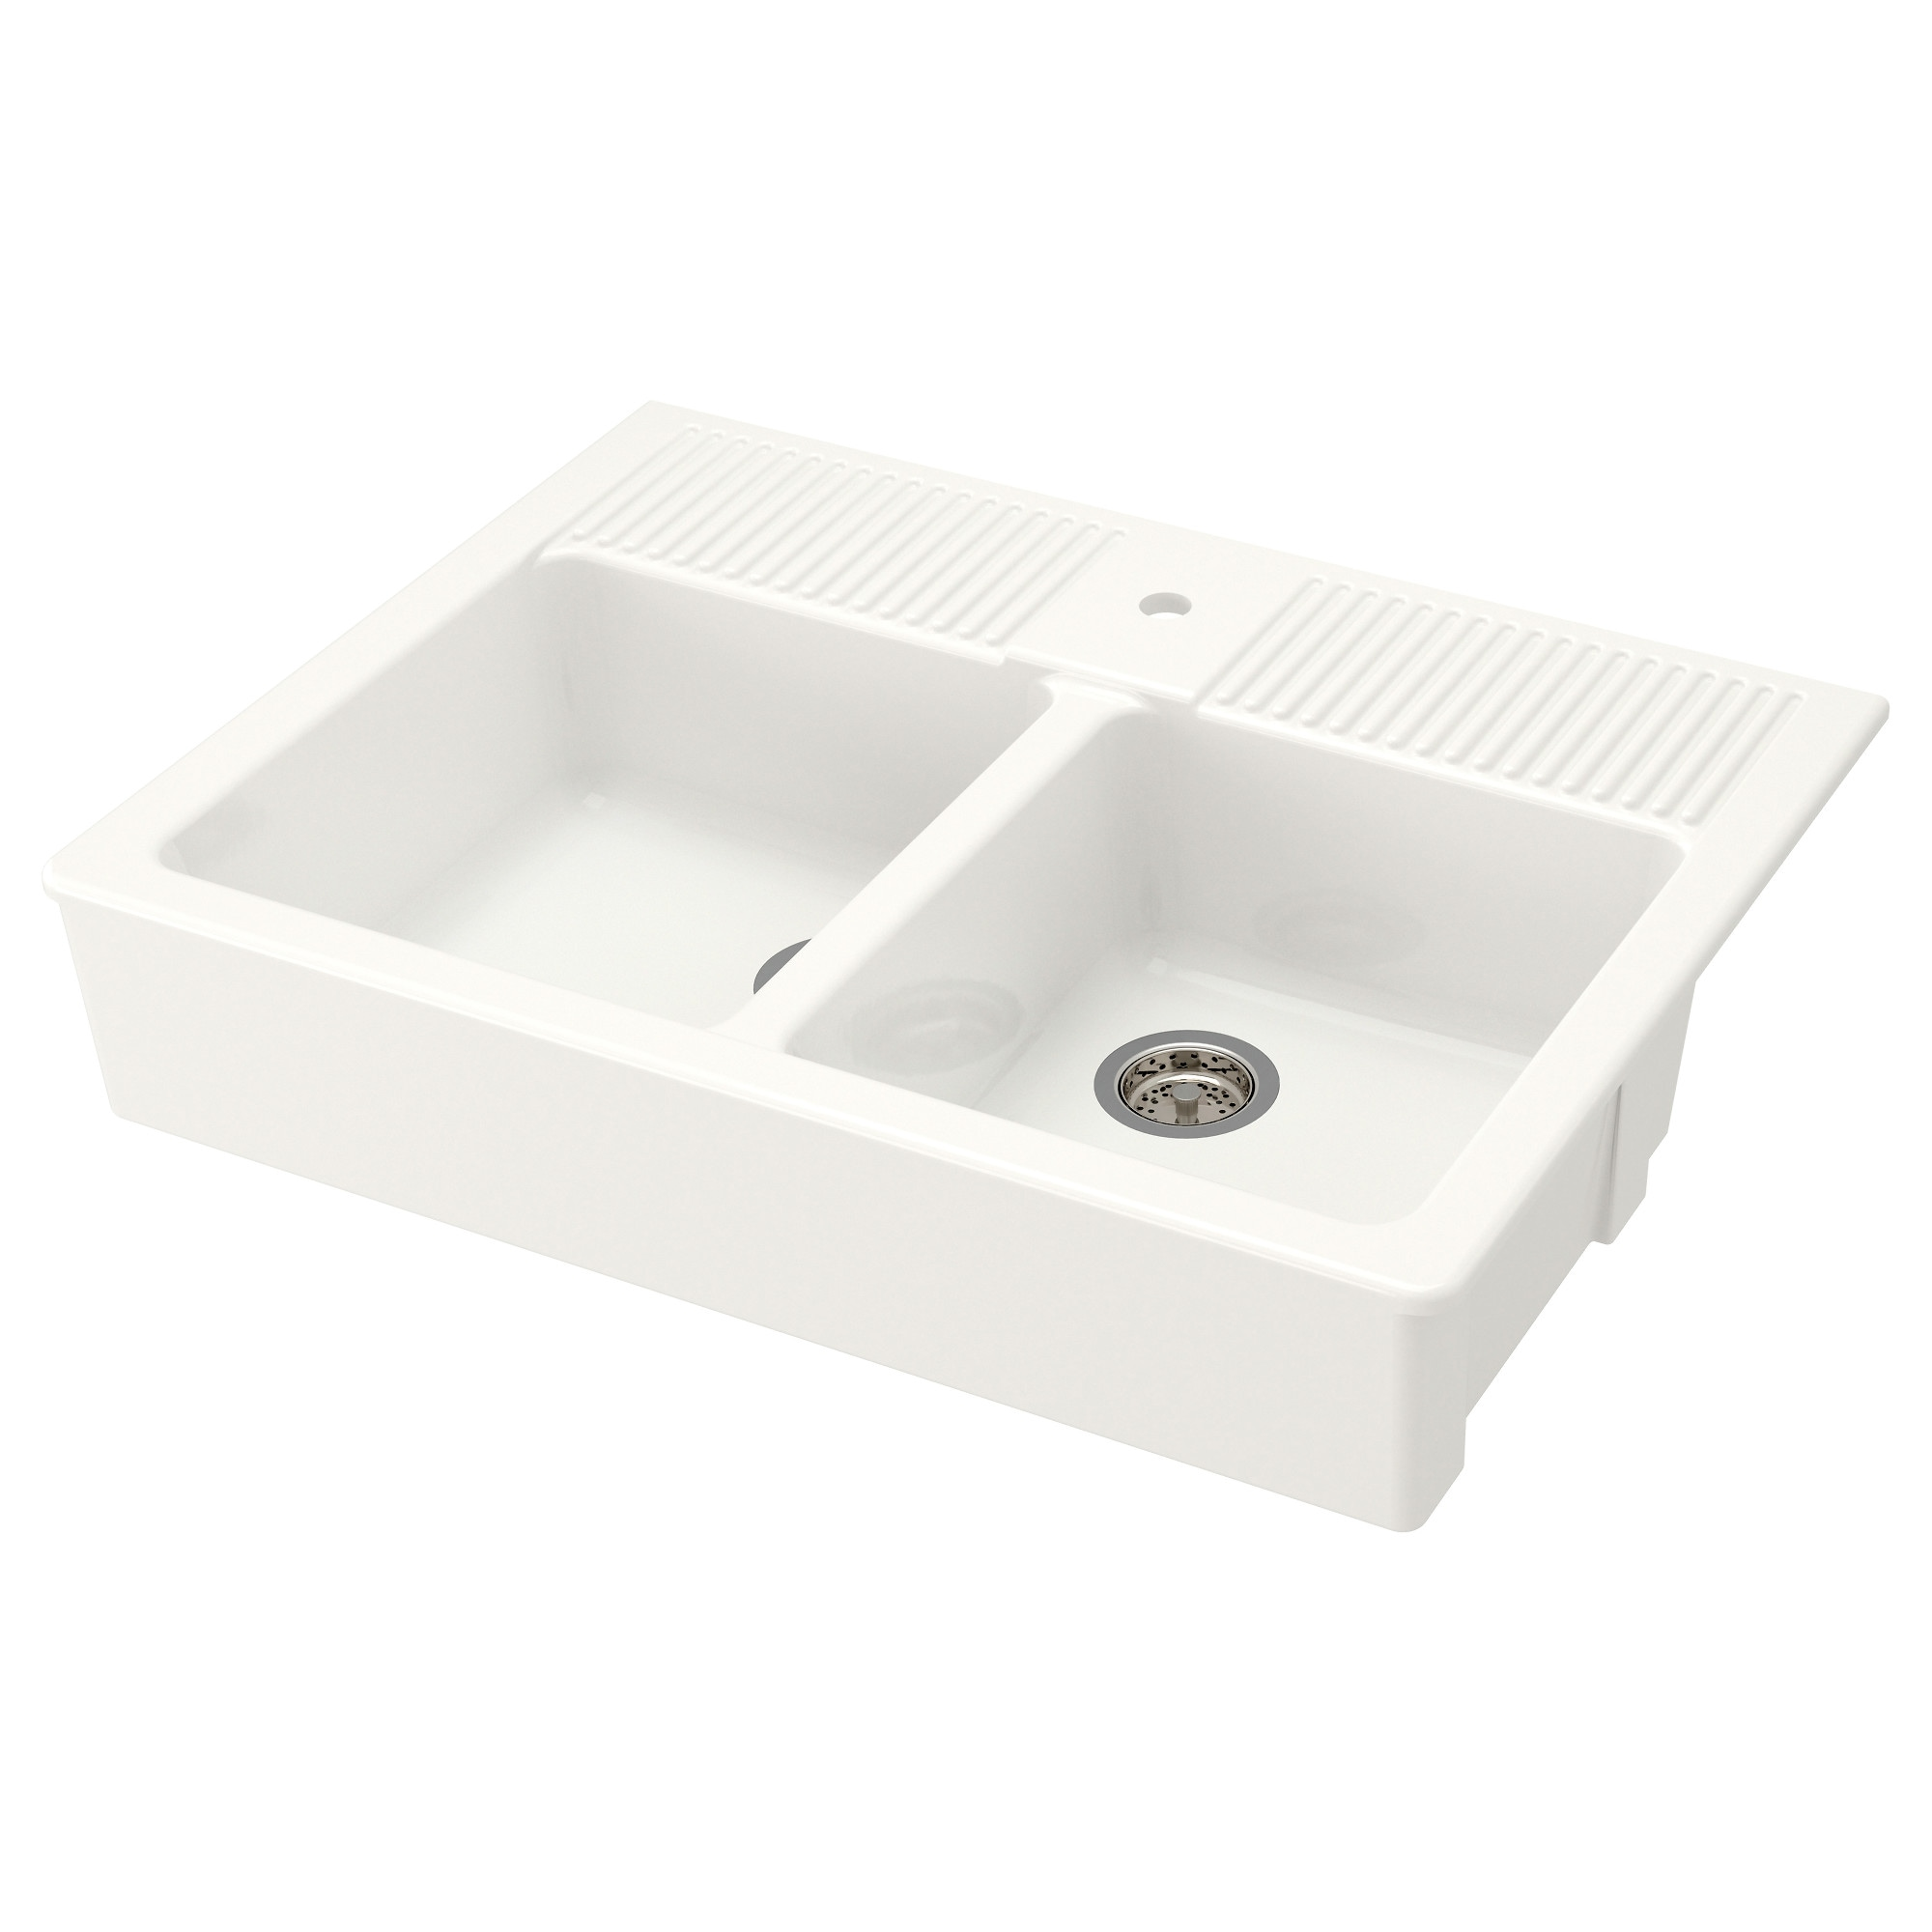 Bathroom Sinks Double Basin domsjÖ double bowl apron front sink - ikea